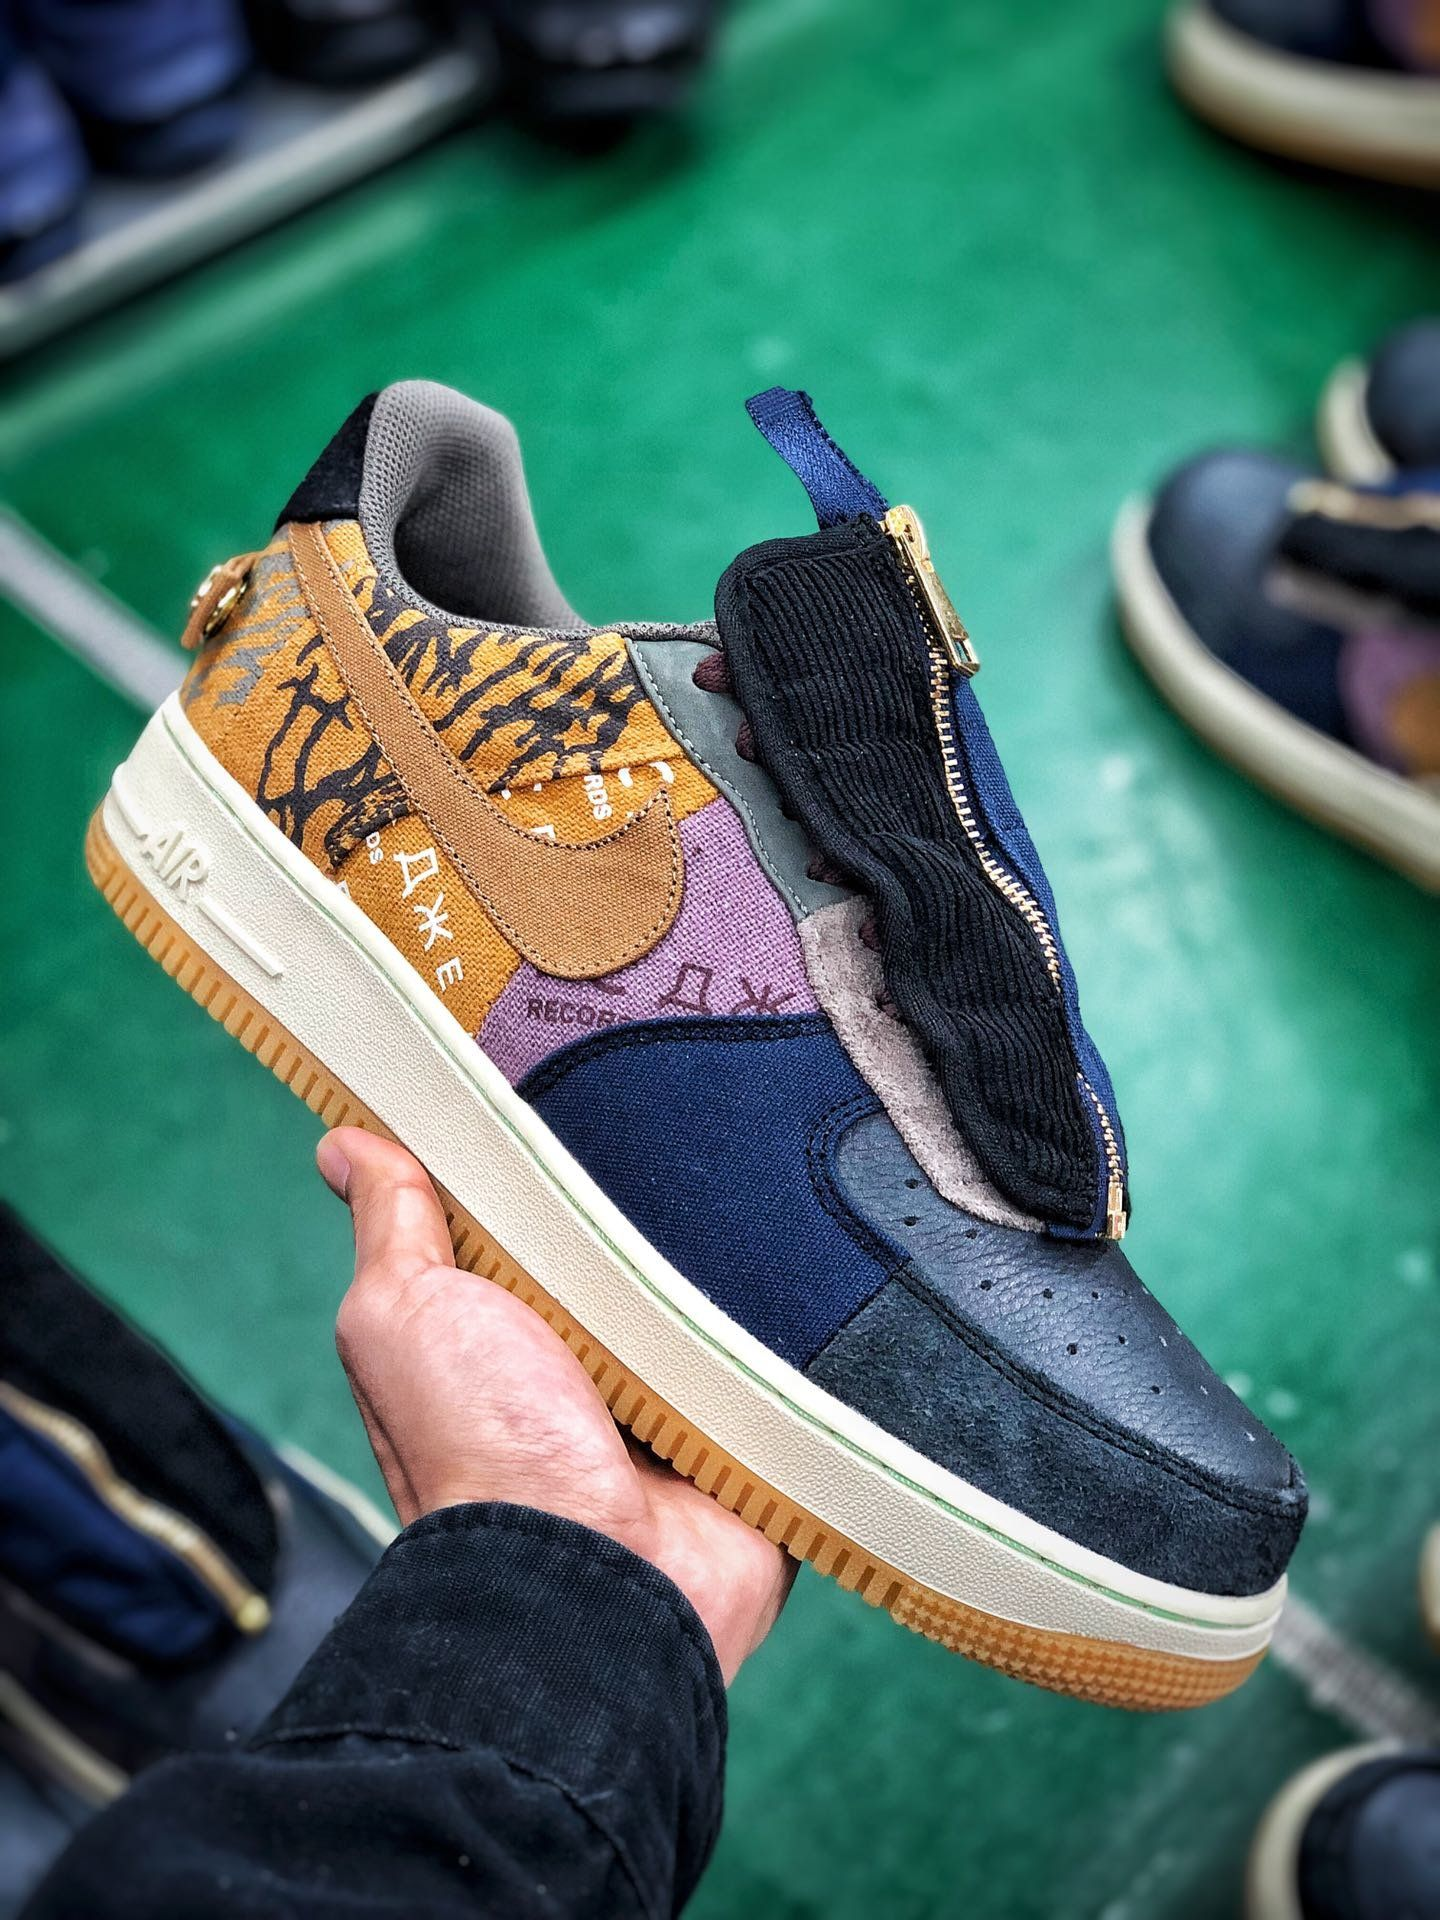 2020的Travis Scott x Nike Air Force 1 CN2405900